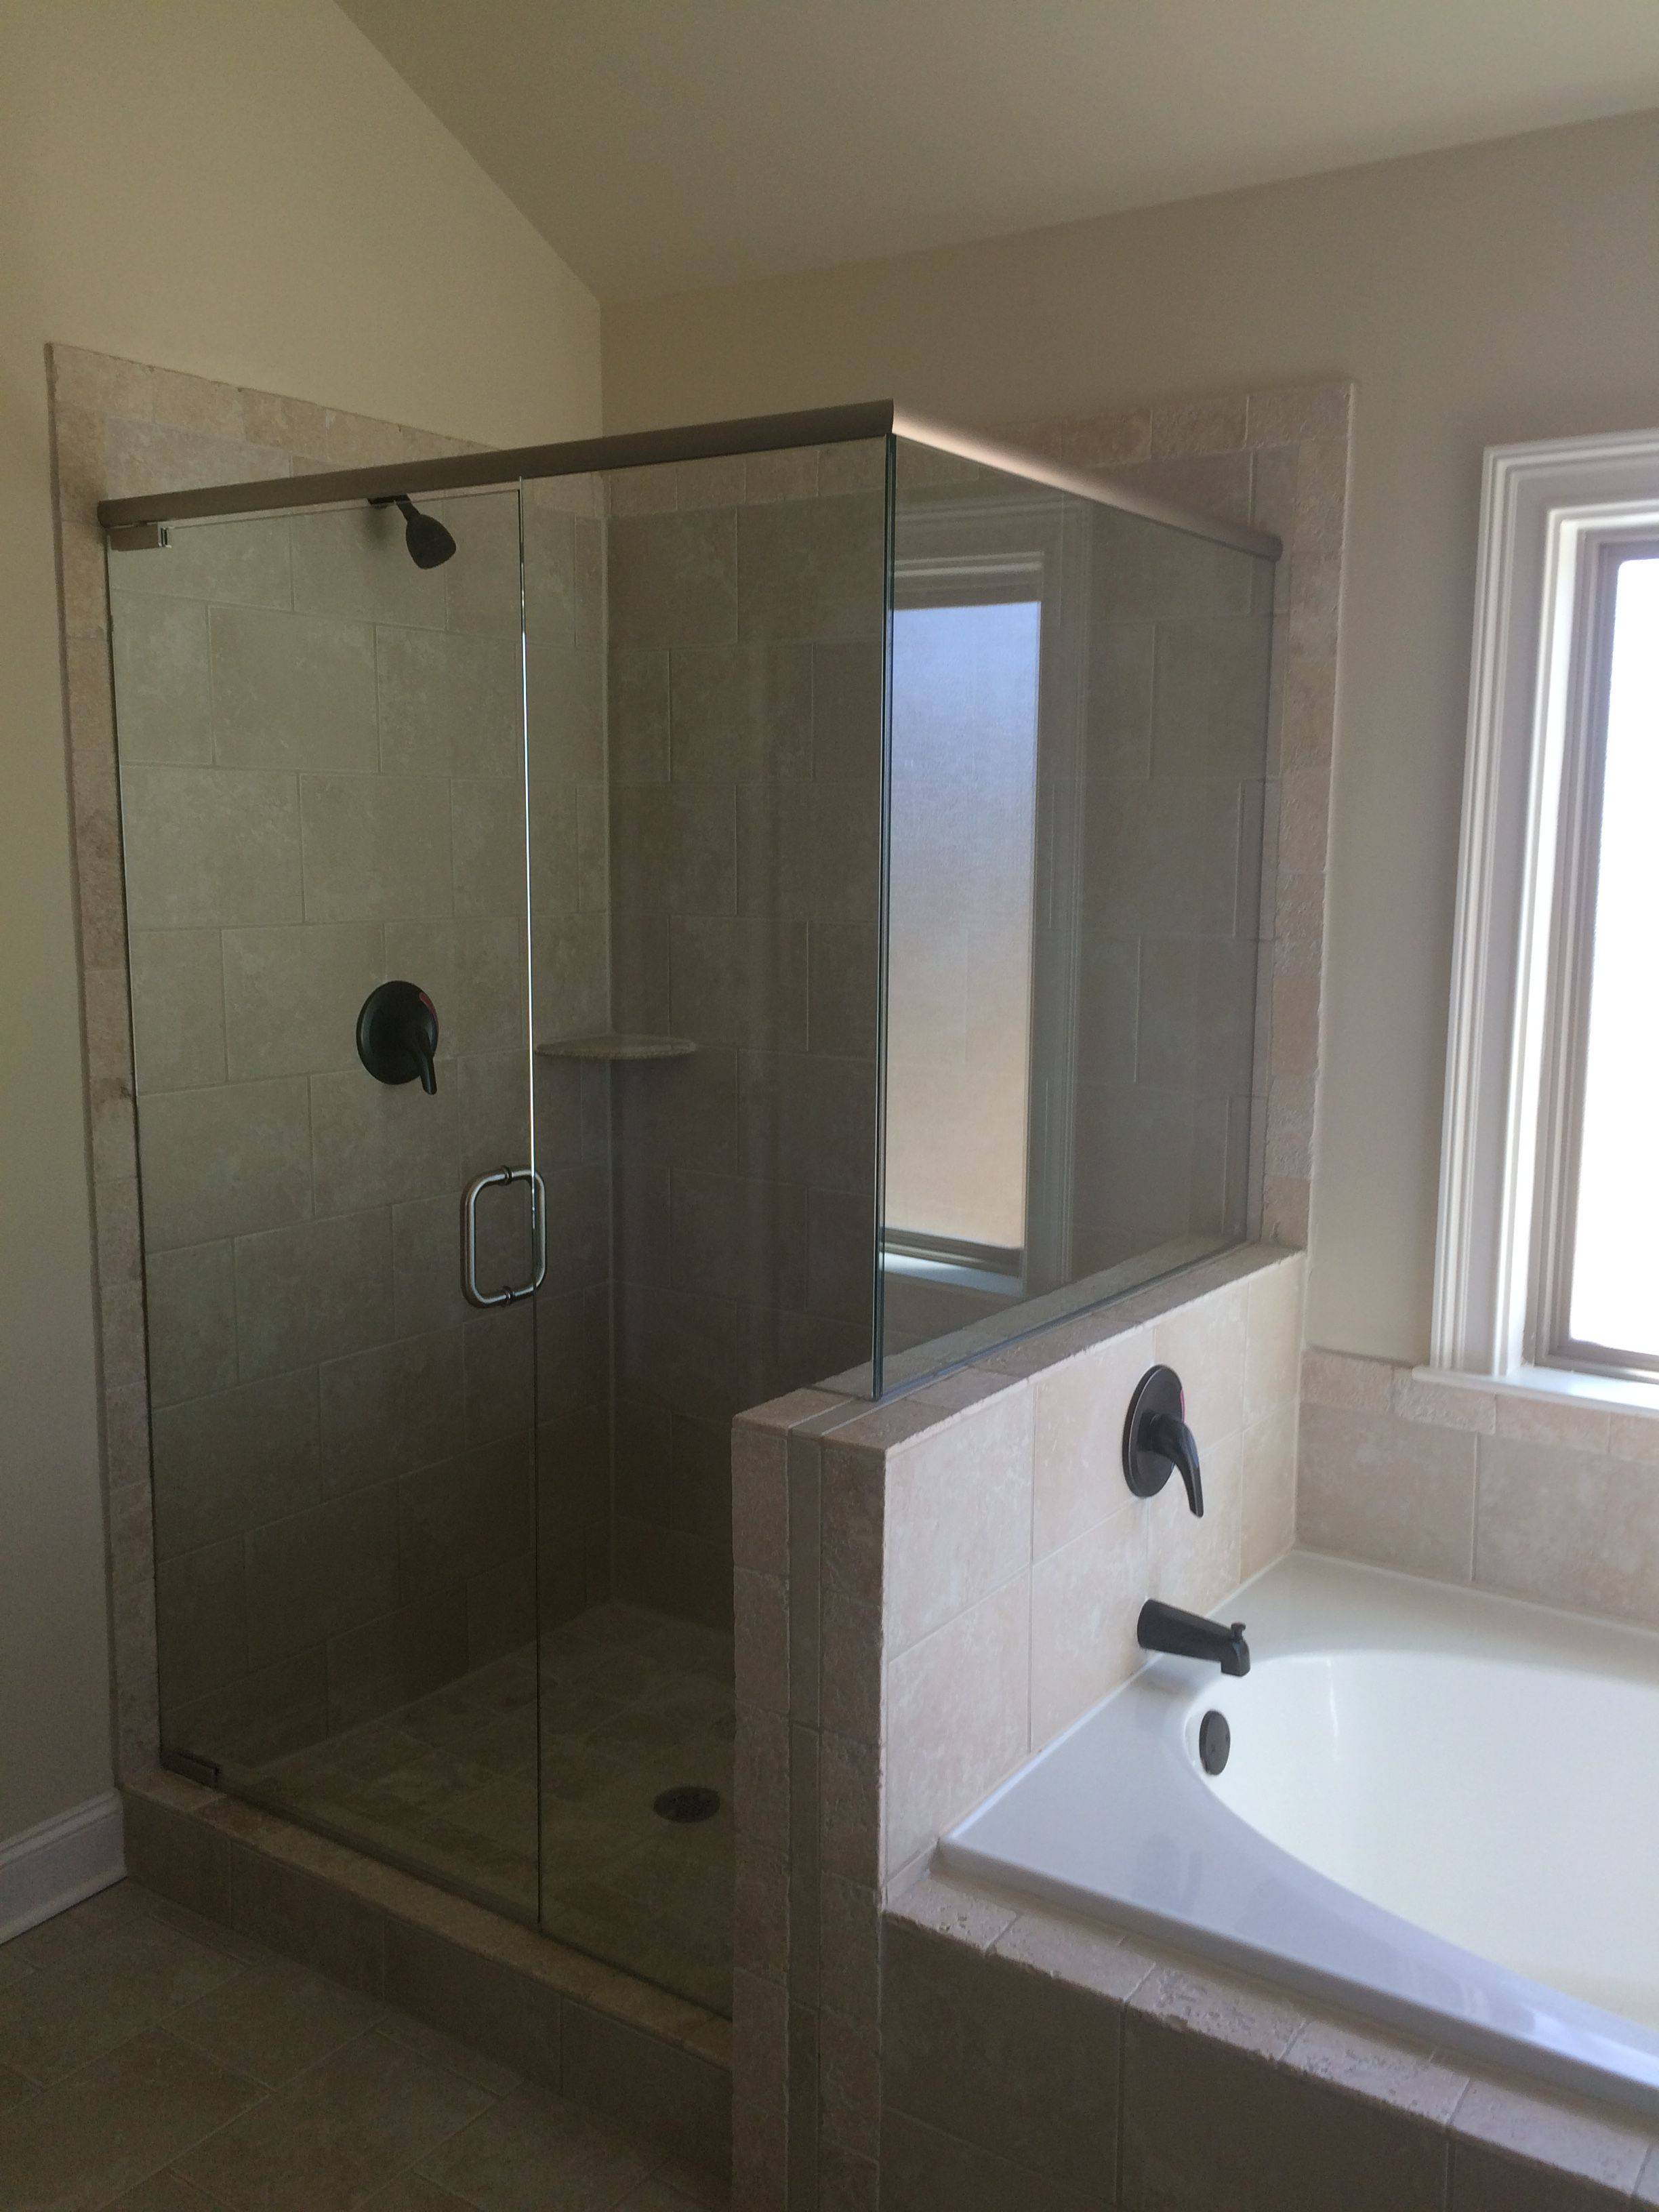 Drop In Garden Tub.Master Bath Level 2 Shower And Drop In Garden Tub With